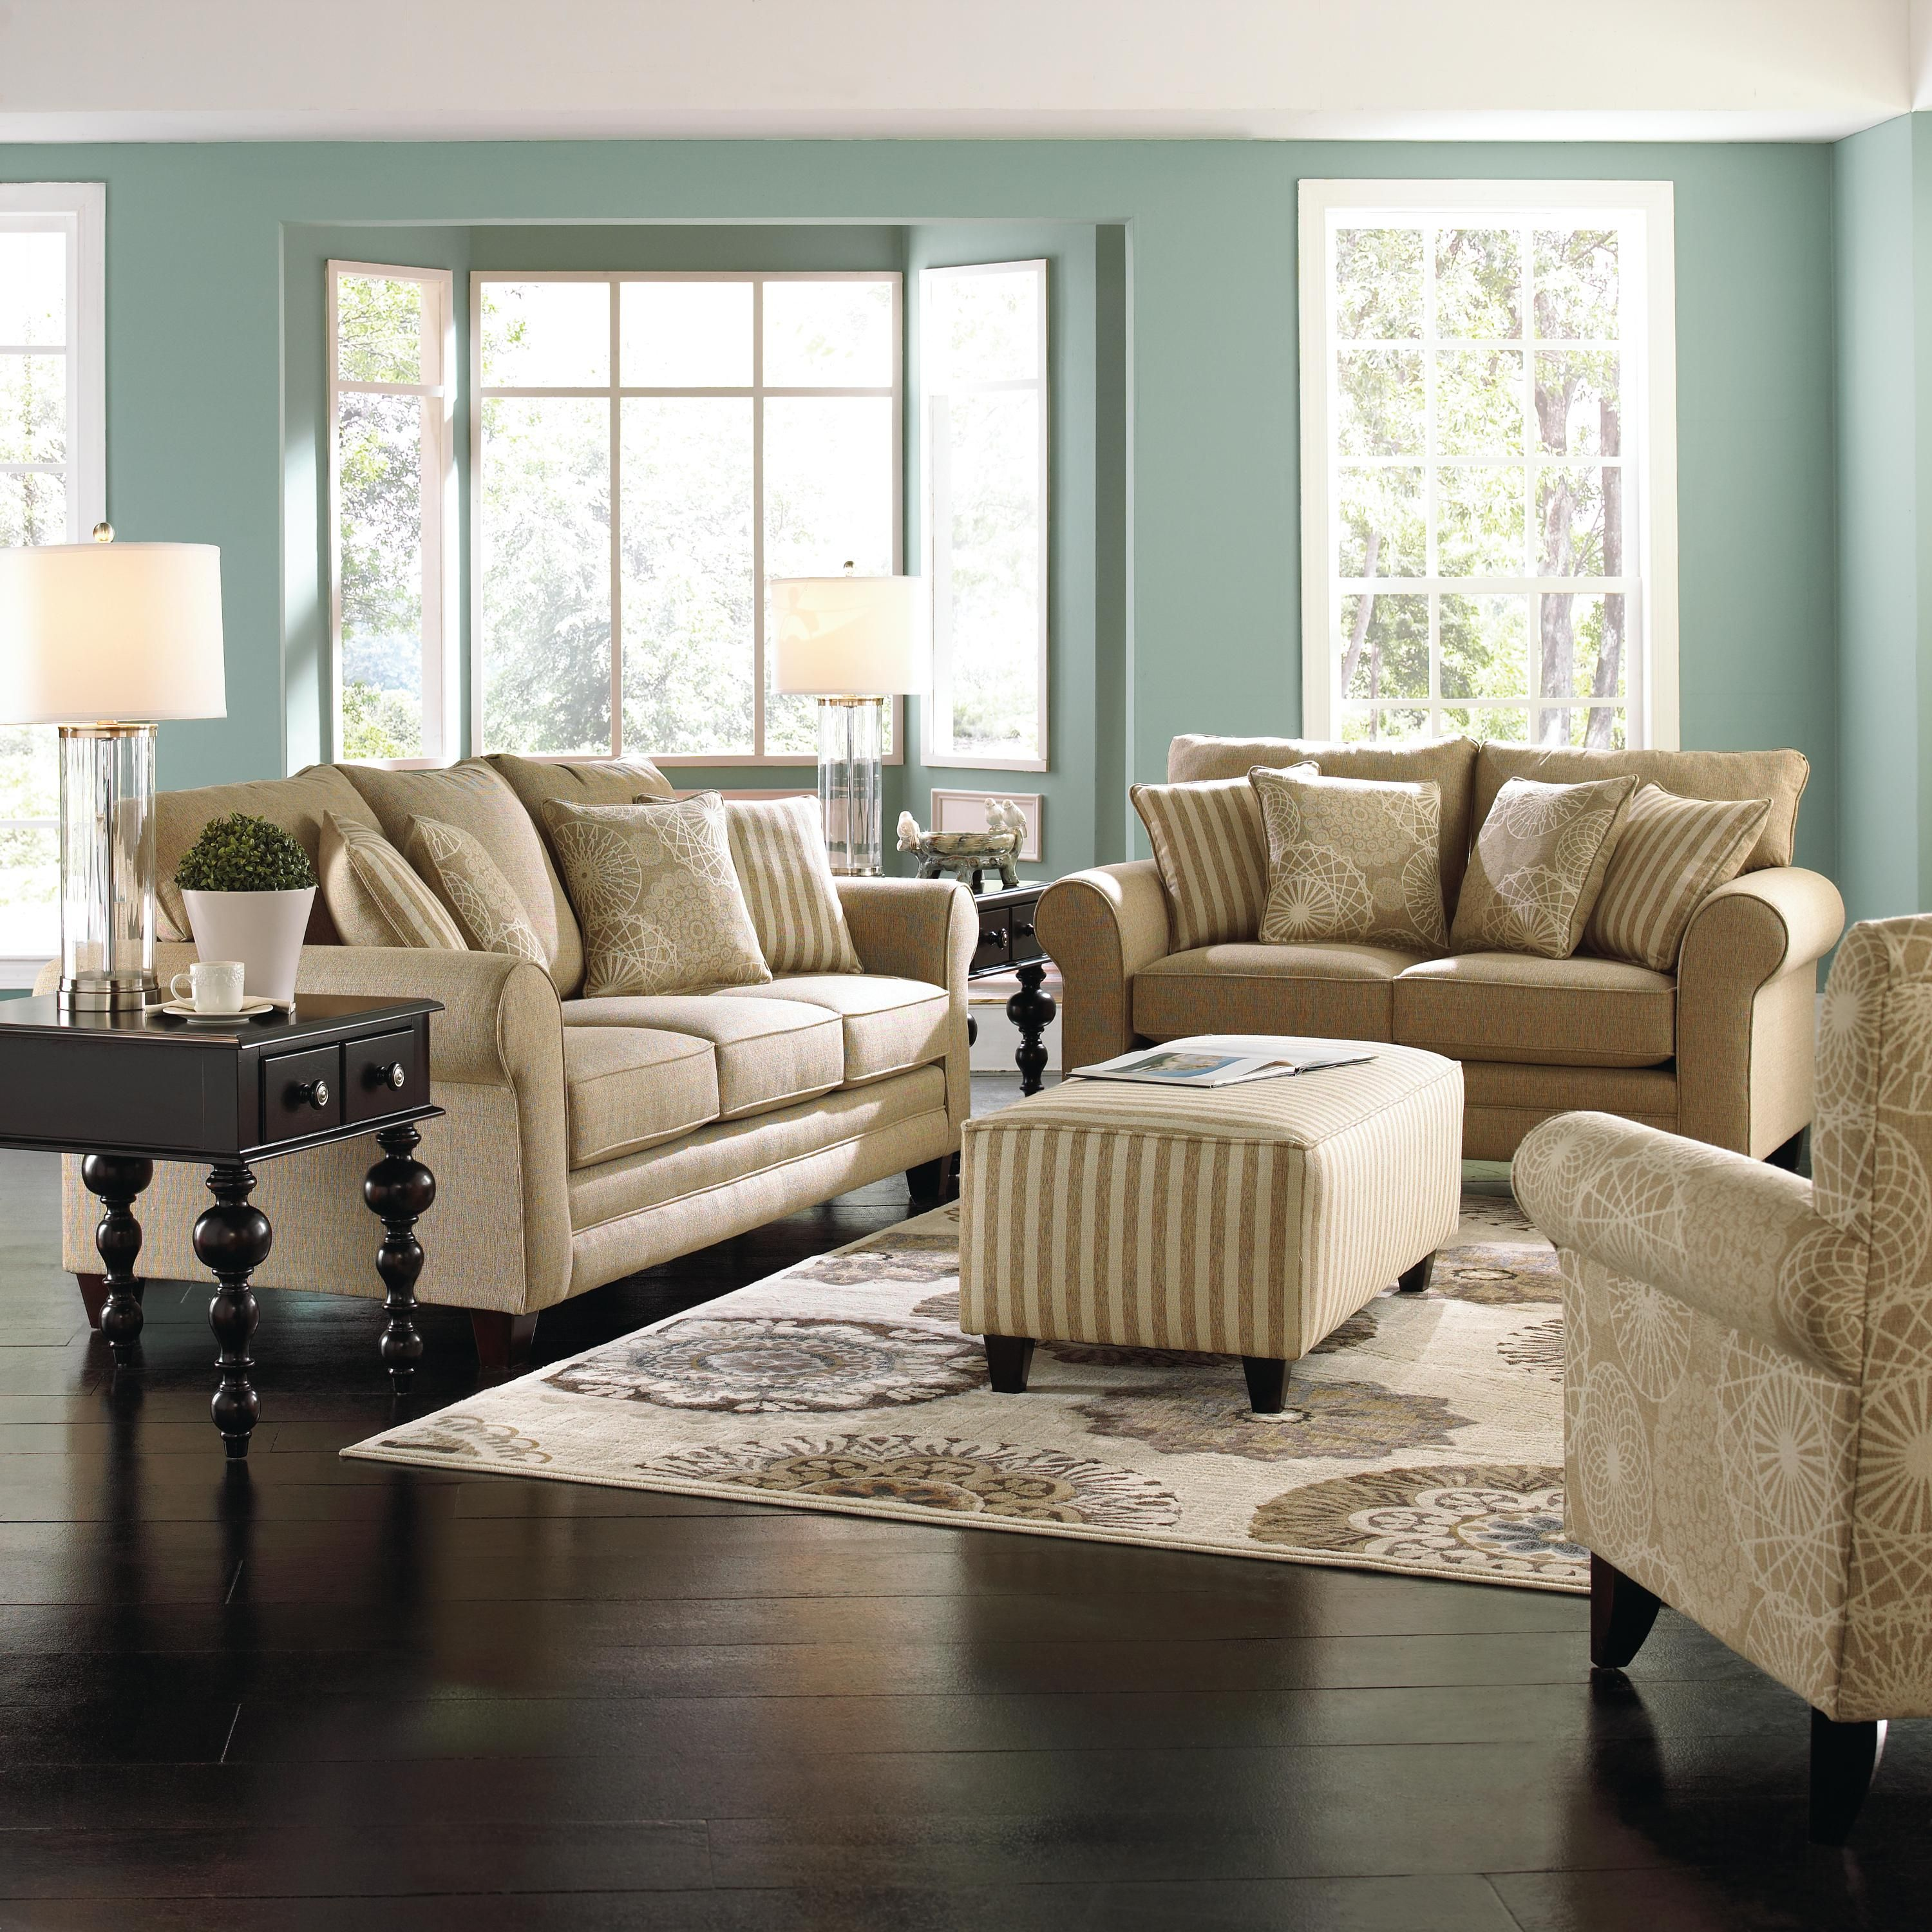 Pin By Heather Cheatham On Home Favorites Furniture Bedroom Sets Loveseat Sofa